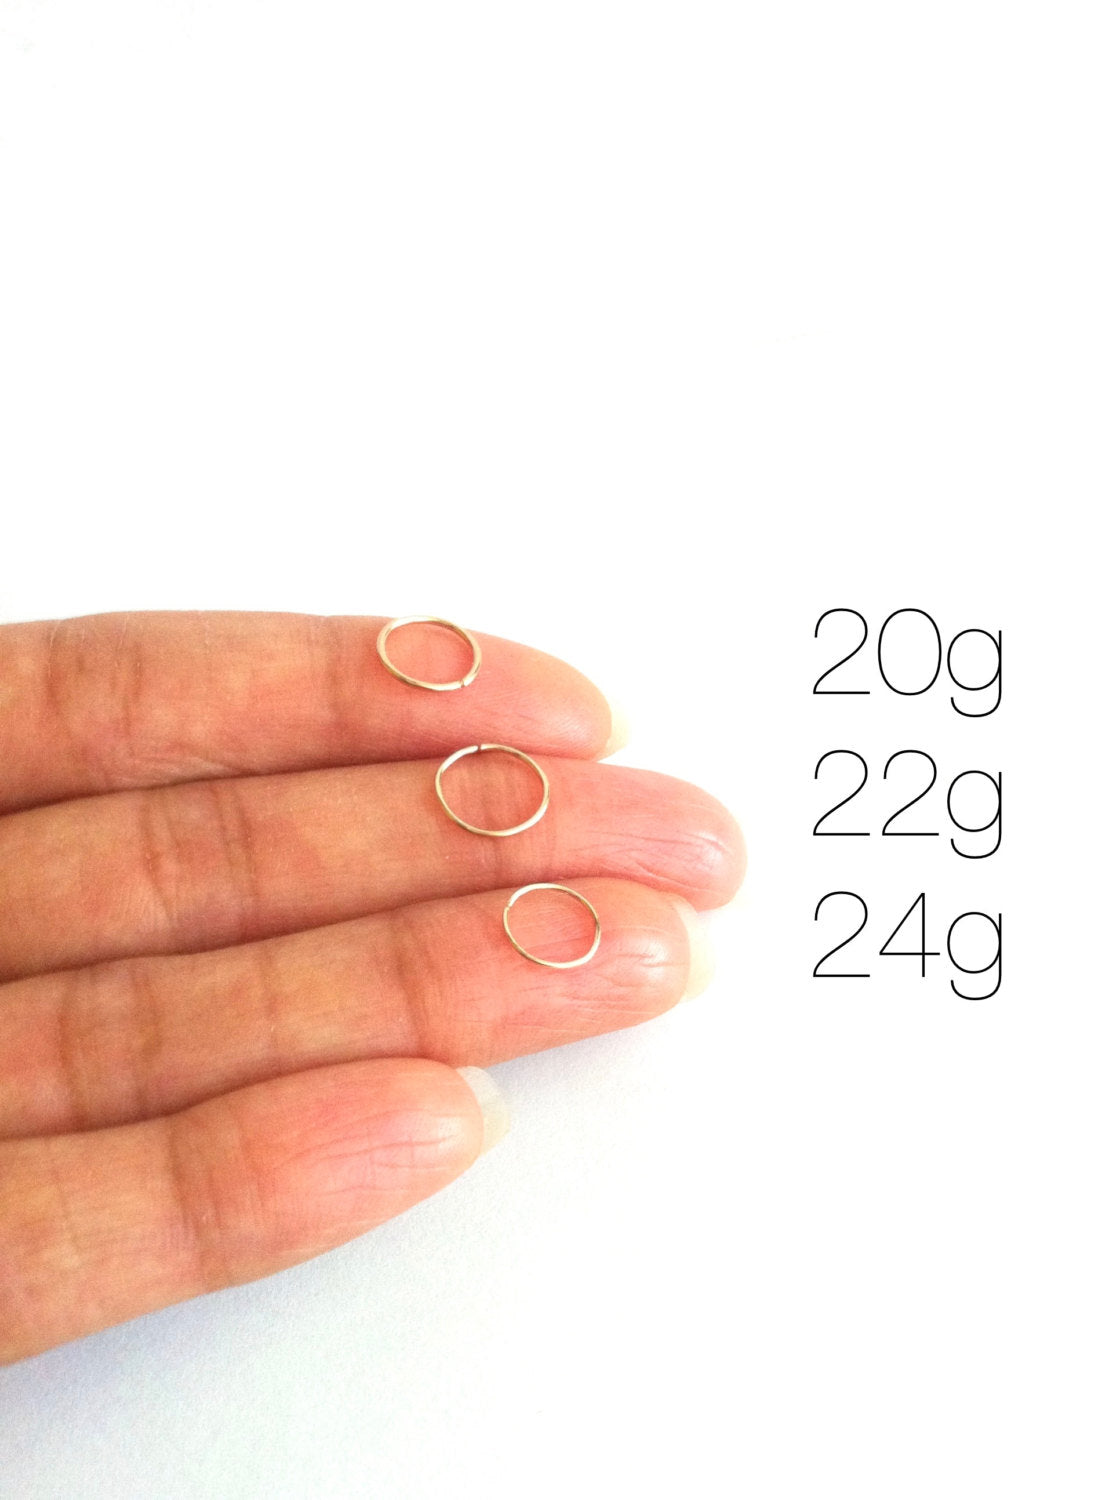 Tiny Cartilage Hoop | 4mm 5mm 6mm or 7mm Endless Hoop | IB Jewelry